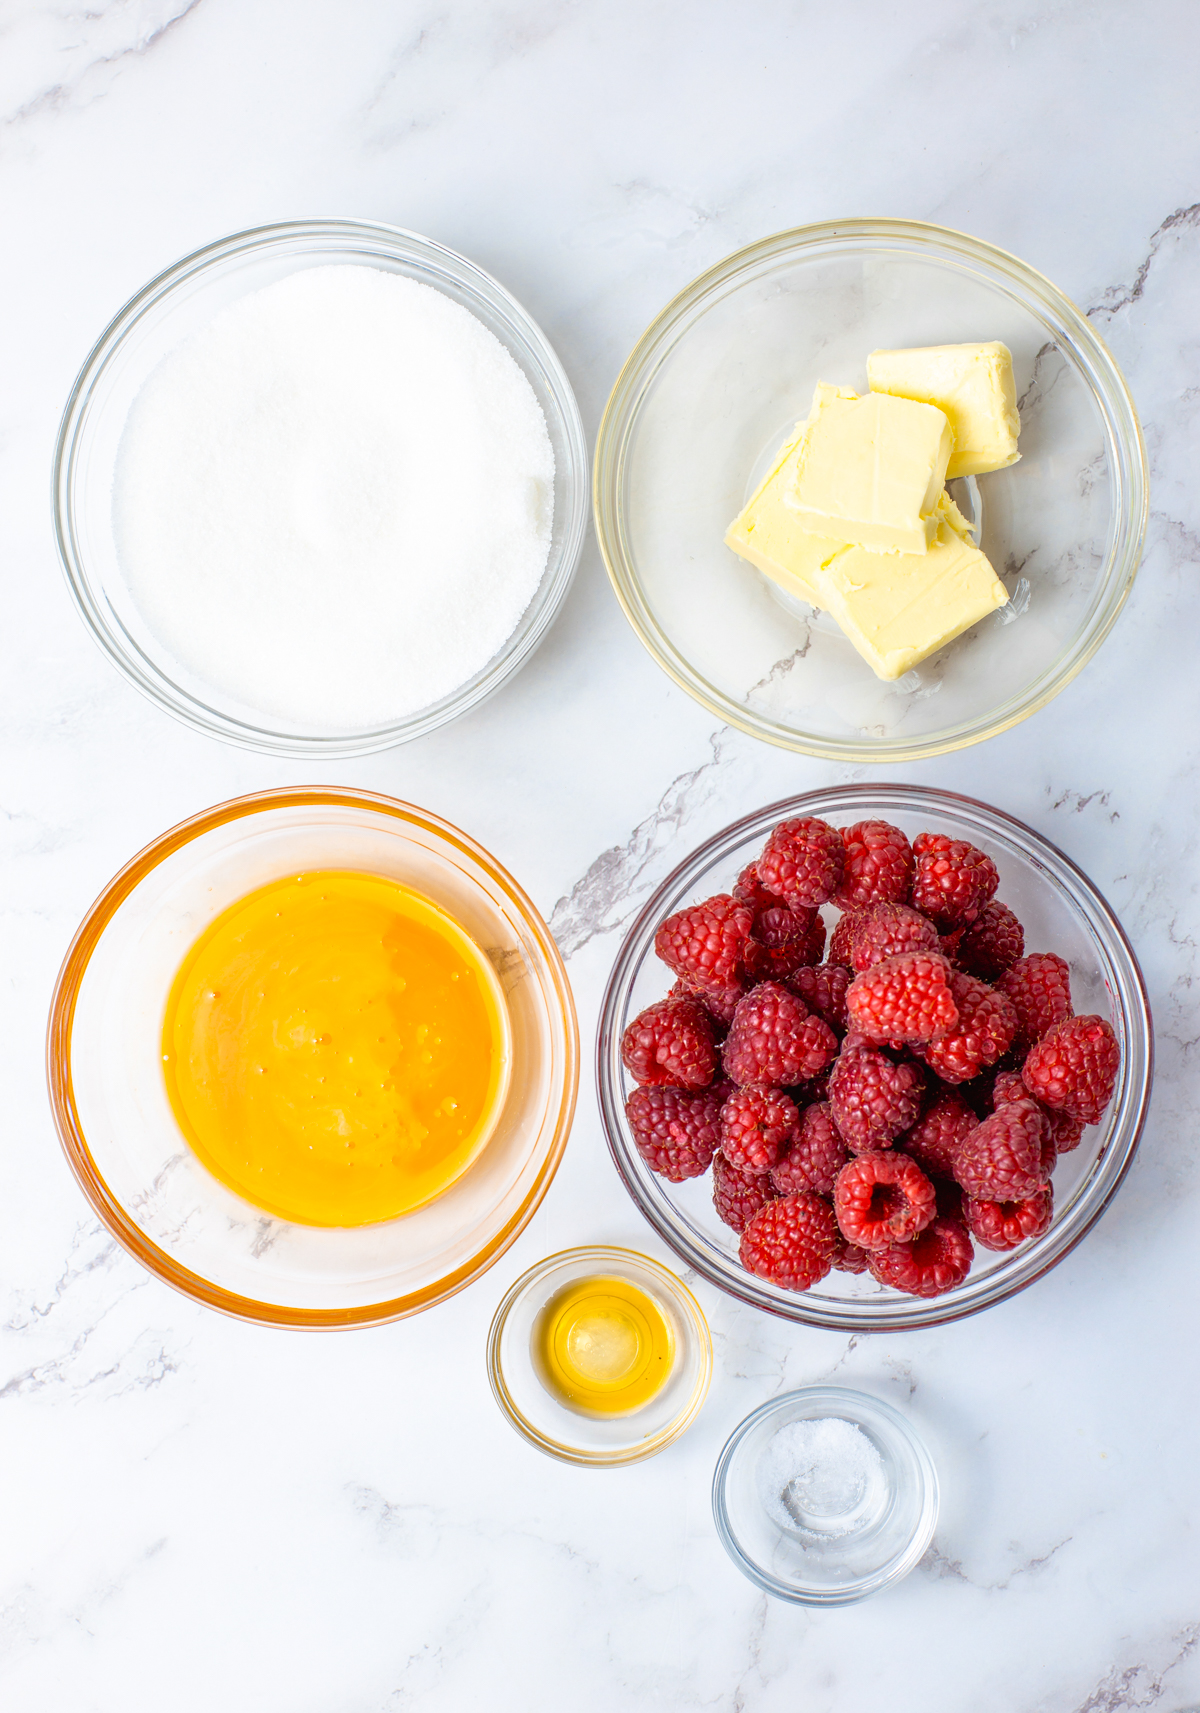 Ingredients needed to make Raspberry Curd